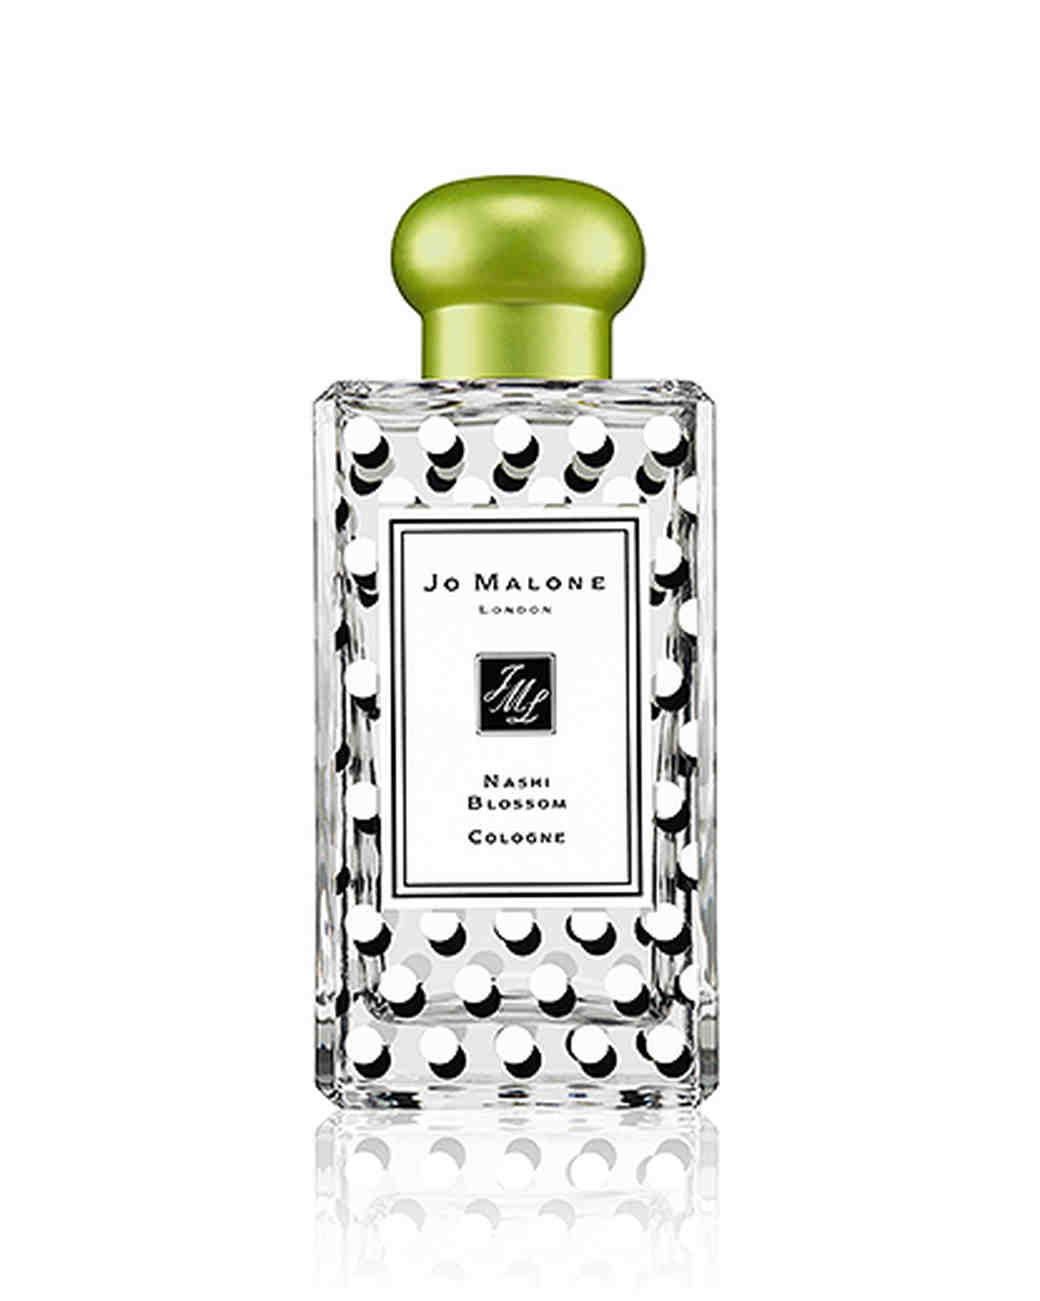 Jo Malone London Nashi Blossom cologne